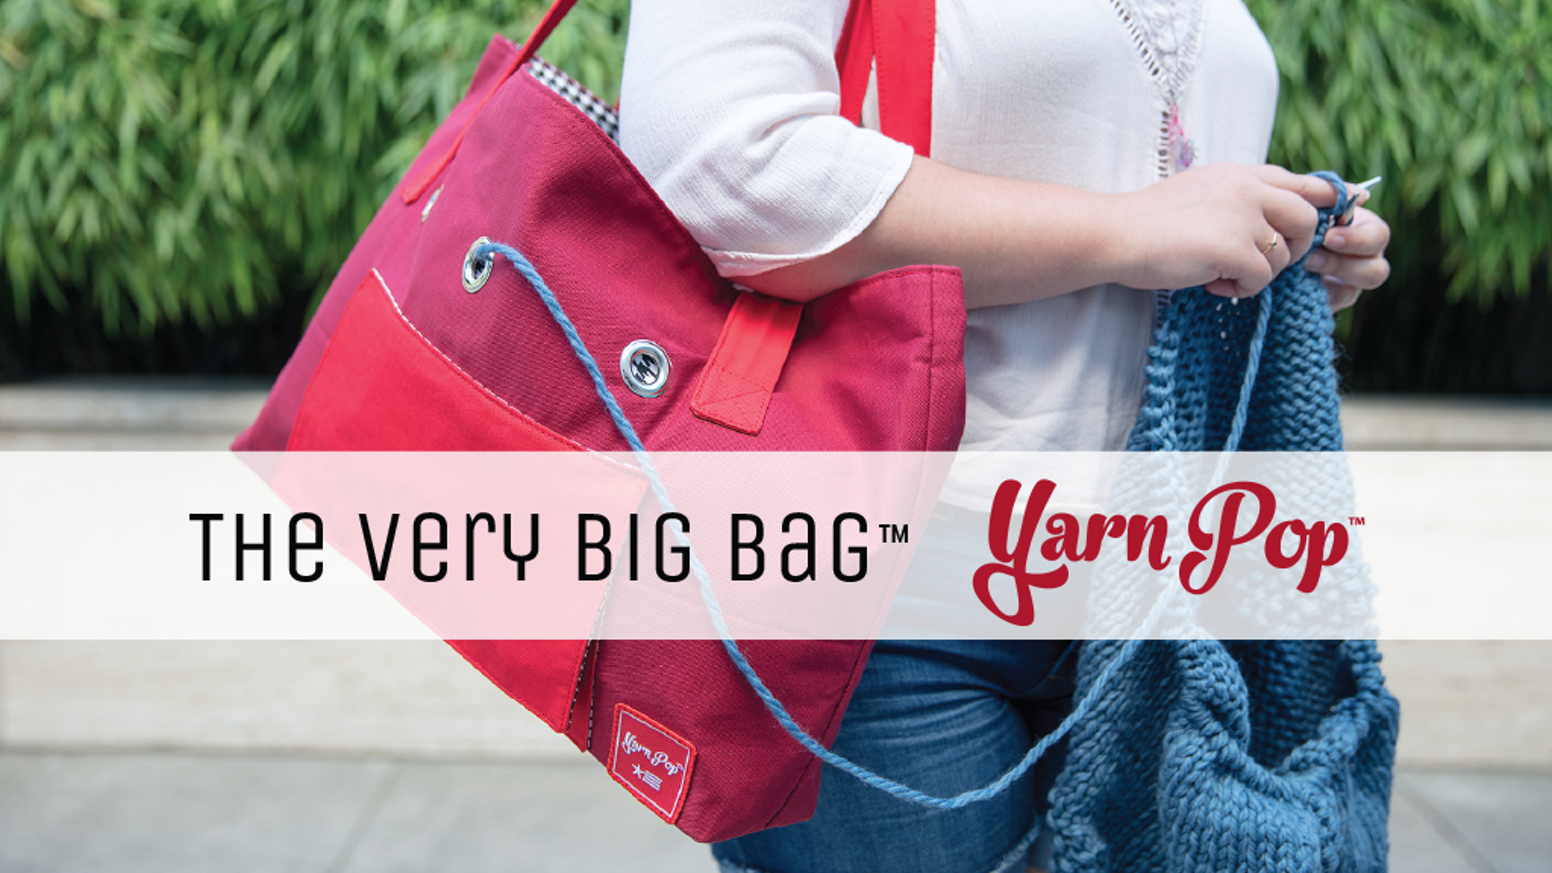 093b87037f The VERY BIG BAG by Yarn Pop lets you bring everything with you so you can